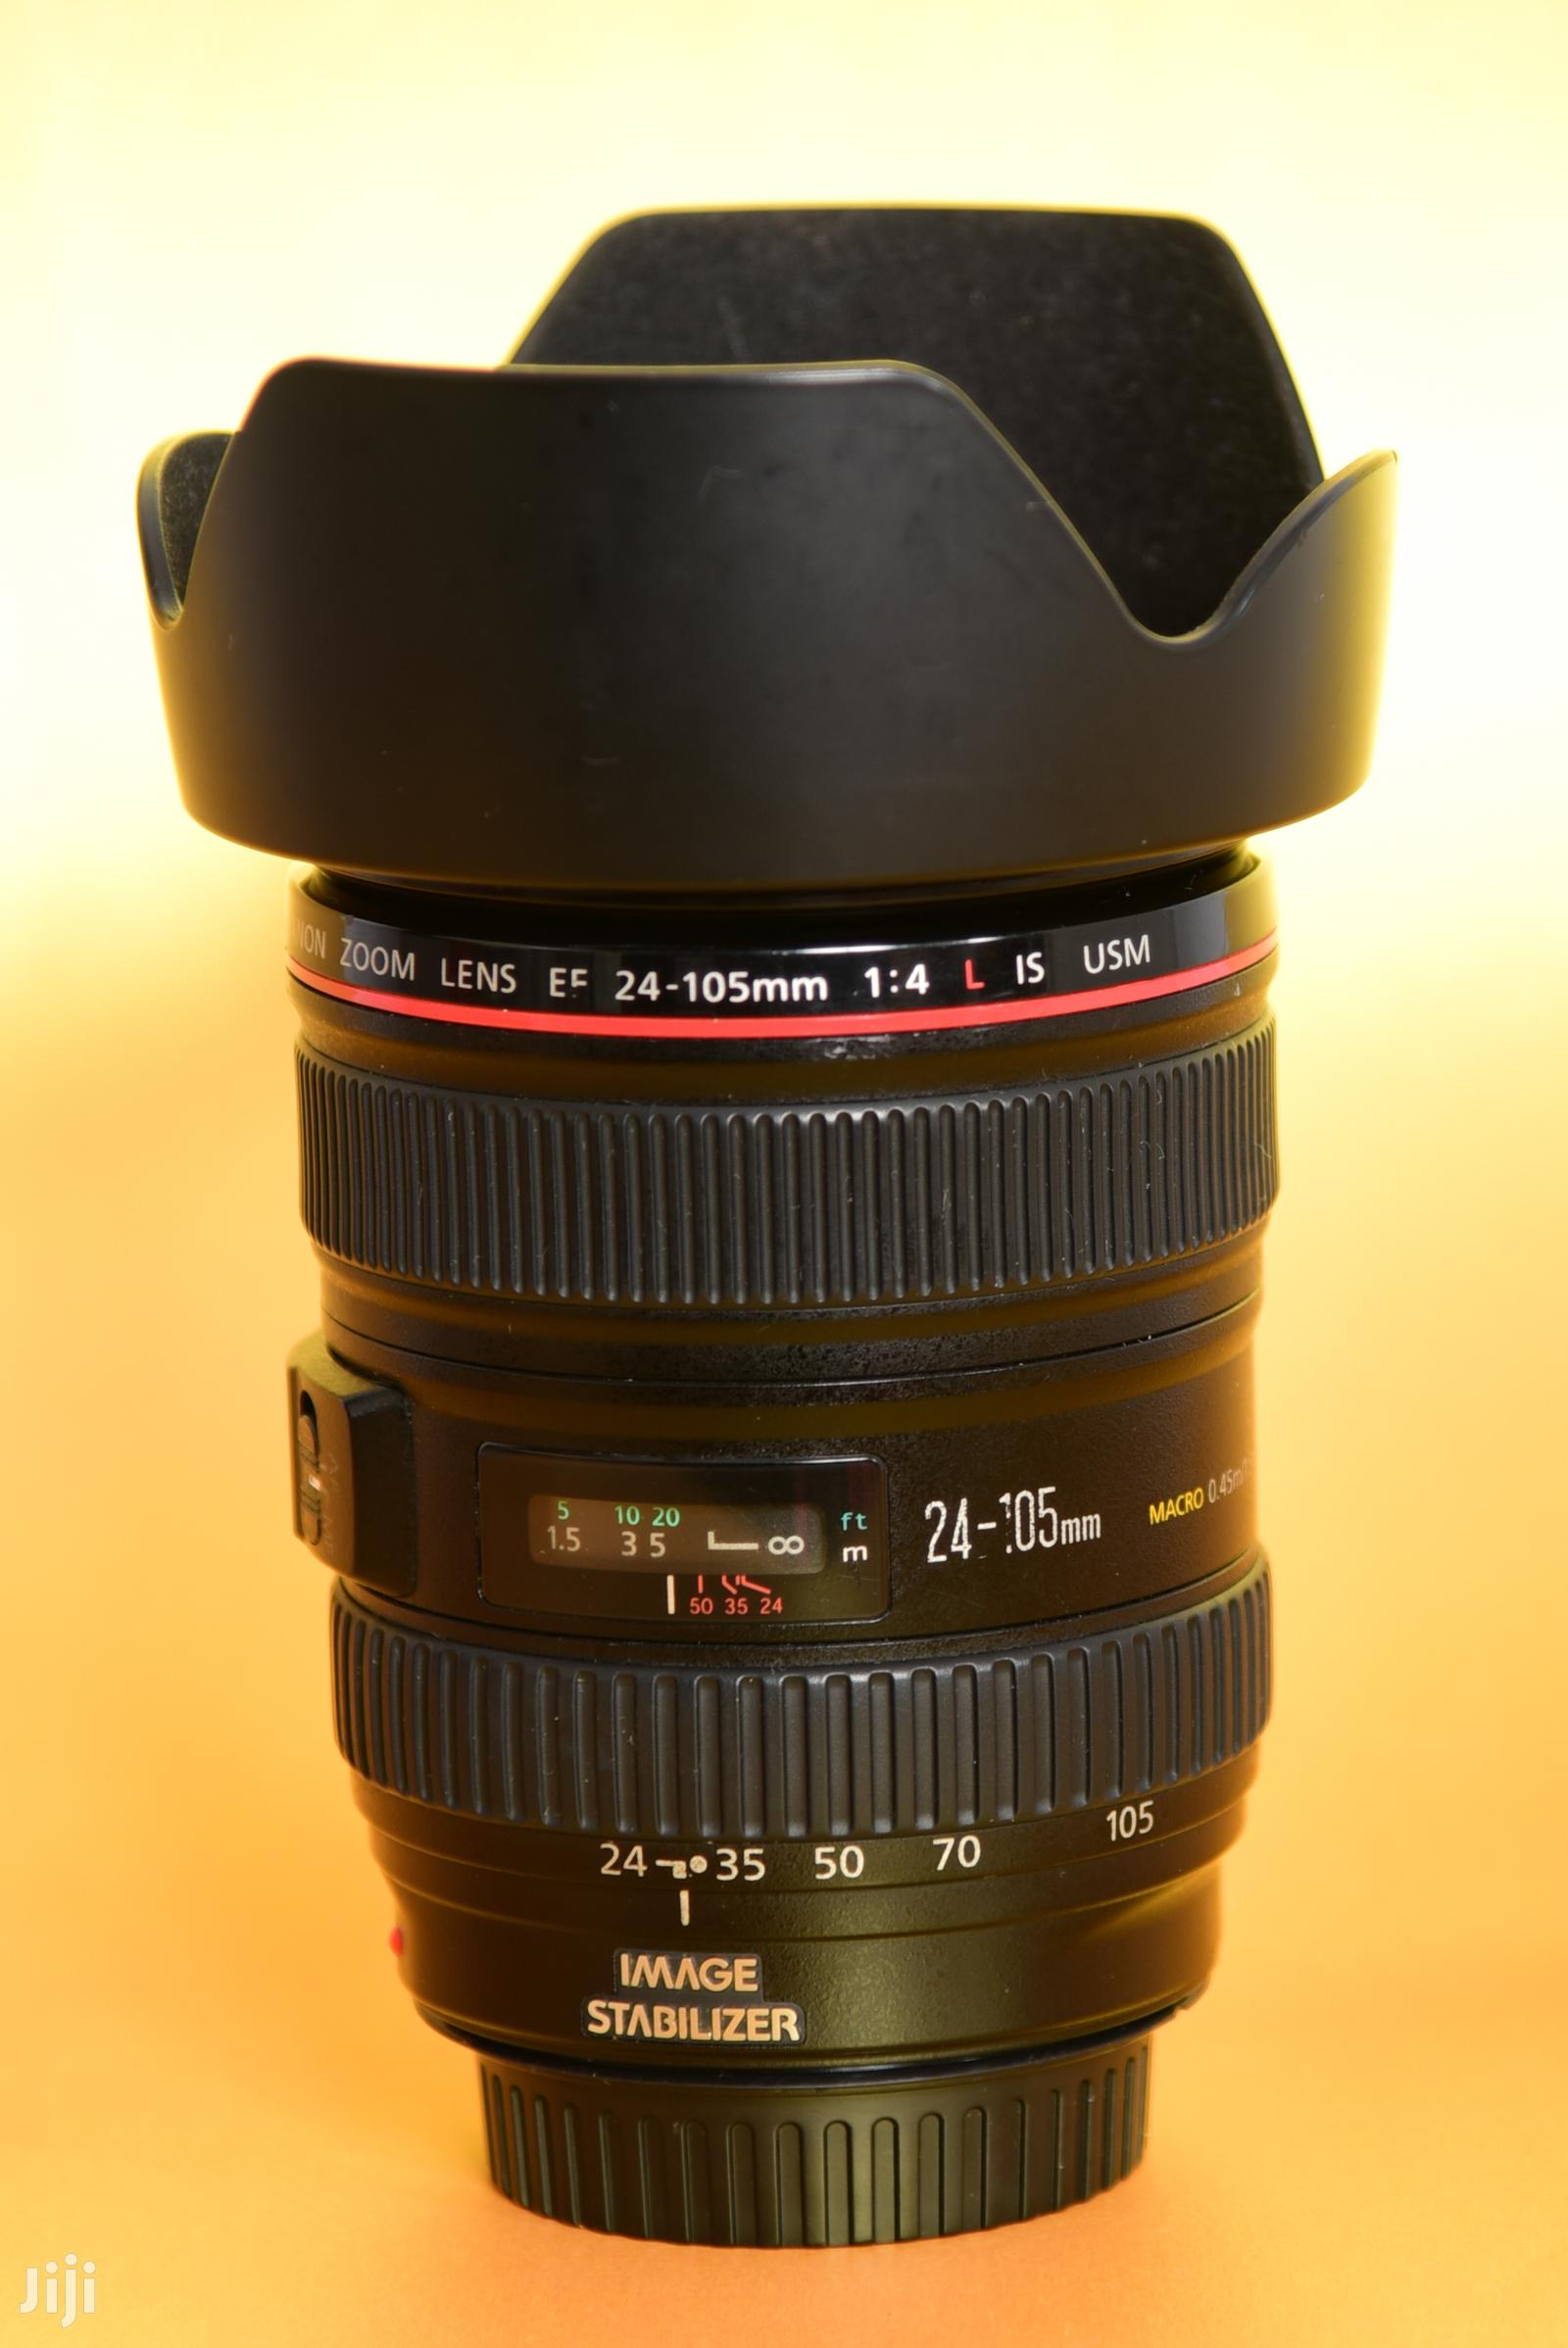 Archive: Canon Ef 24-105mm F/4L IS USM Lens